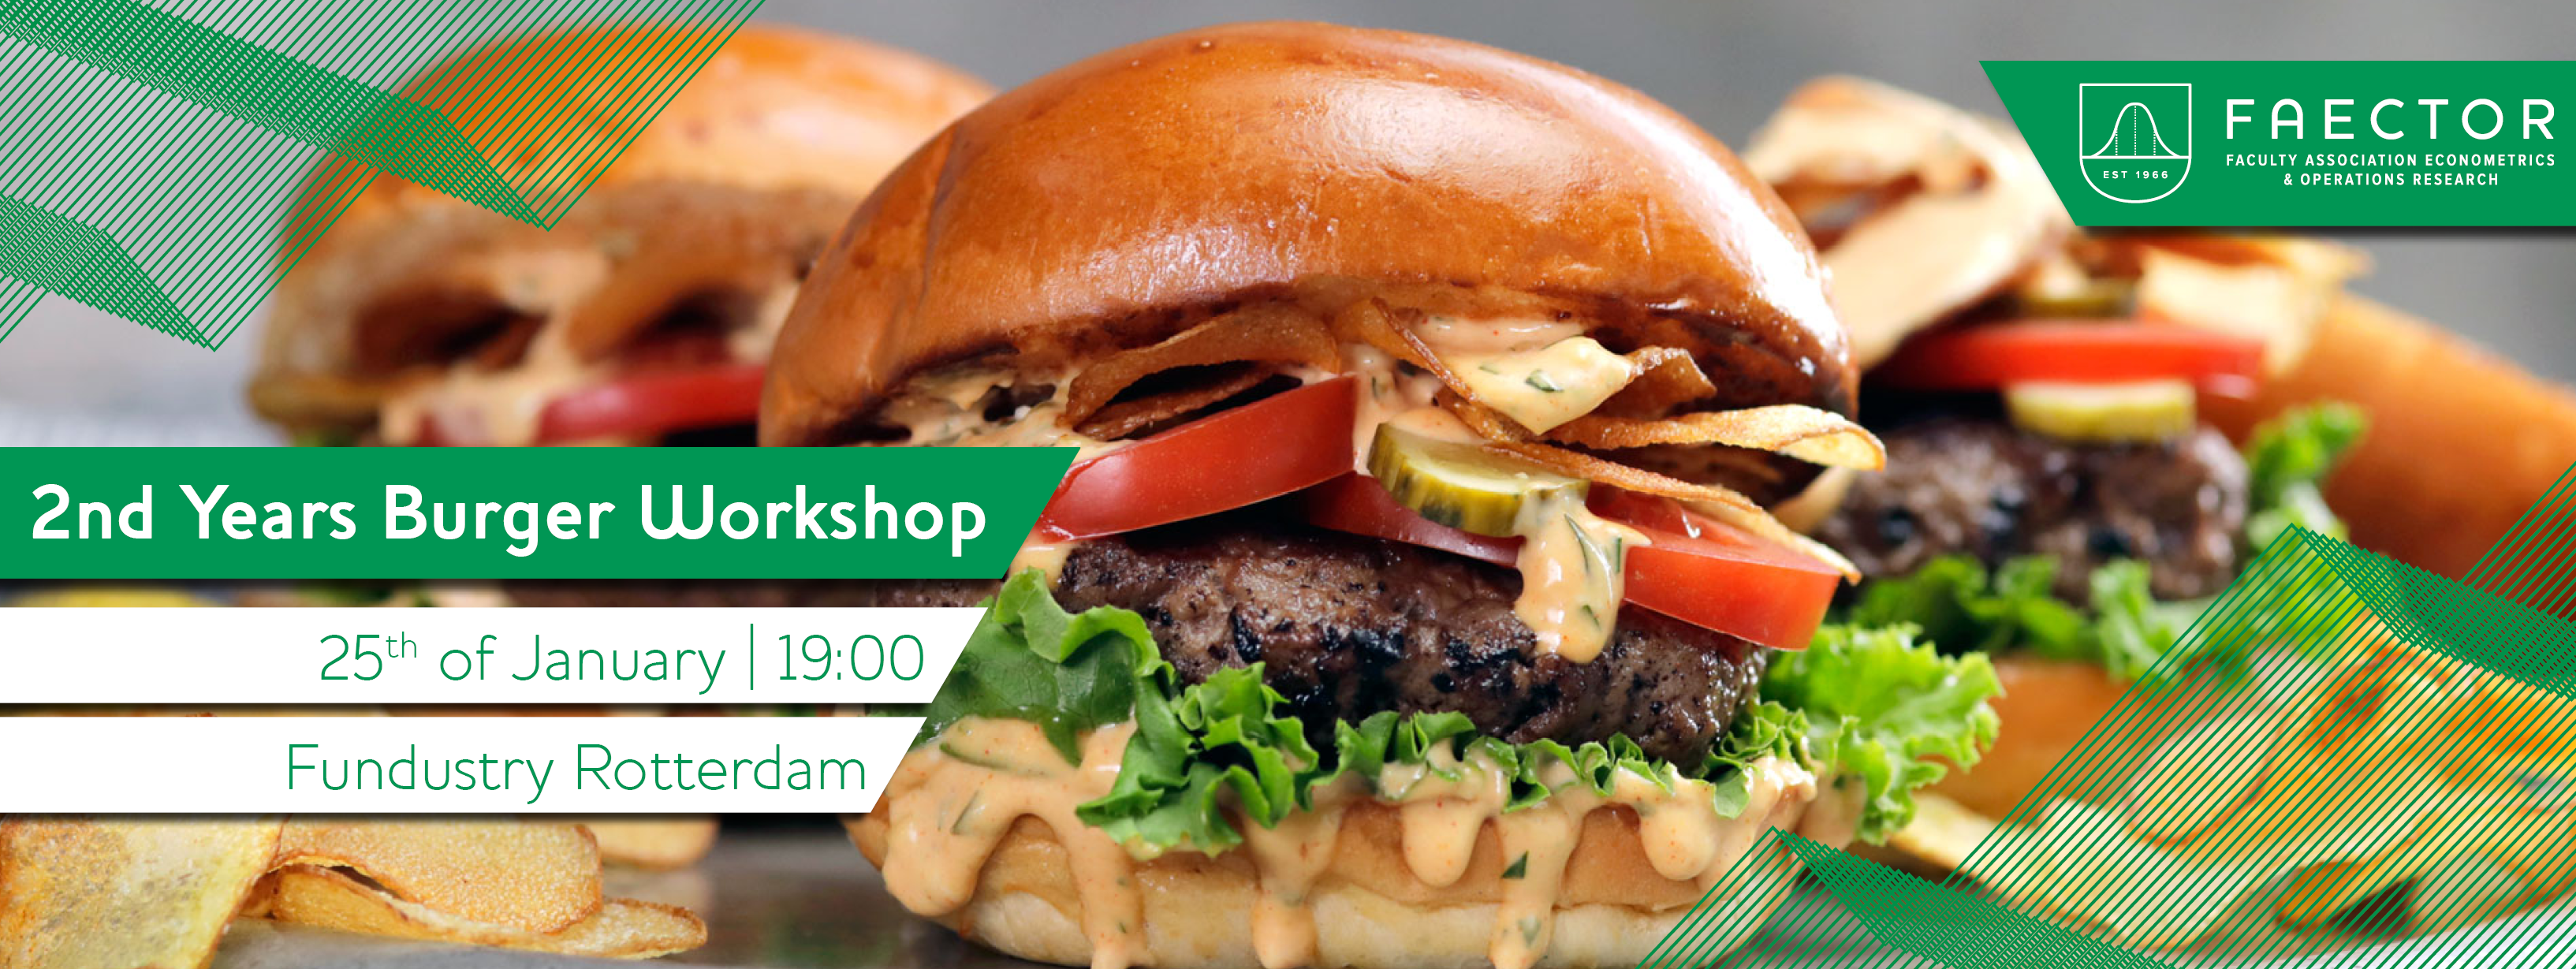 Second Years Burger Workshop